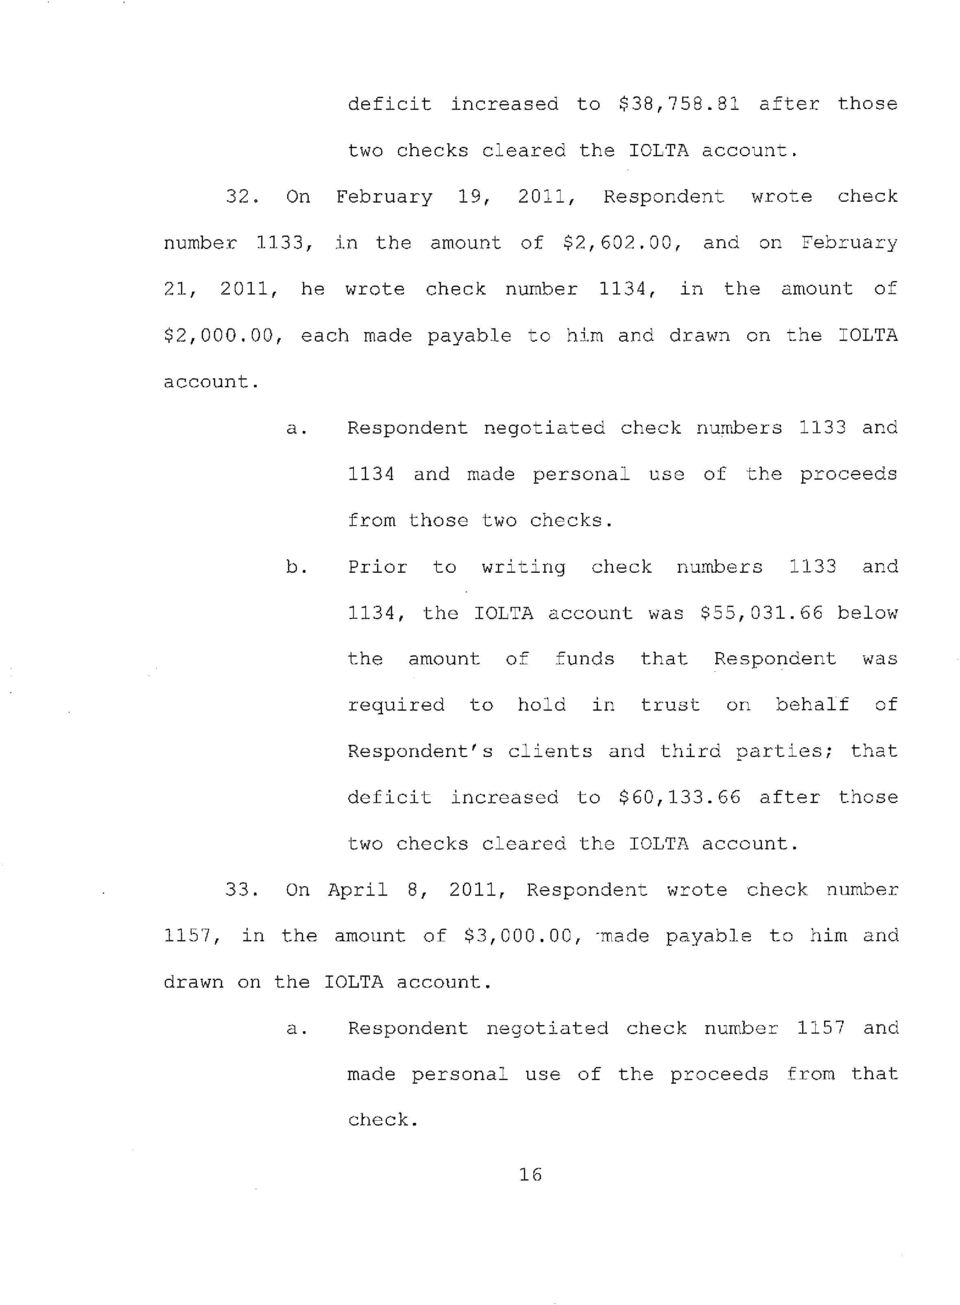 b. Prior to writing check numbers 1133 and 1134, the IOLTA account was $55,031.